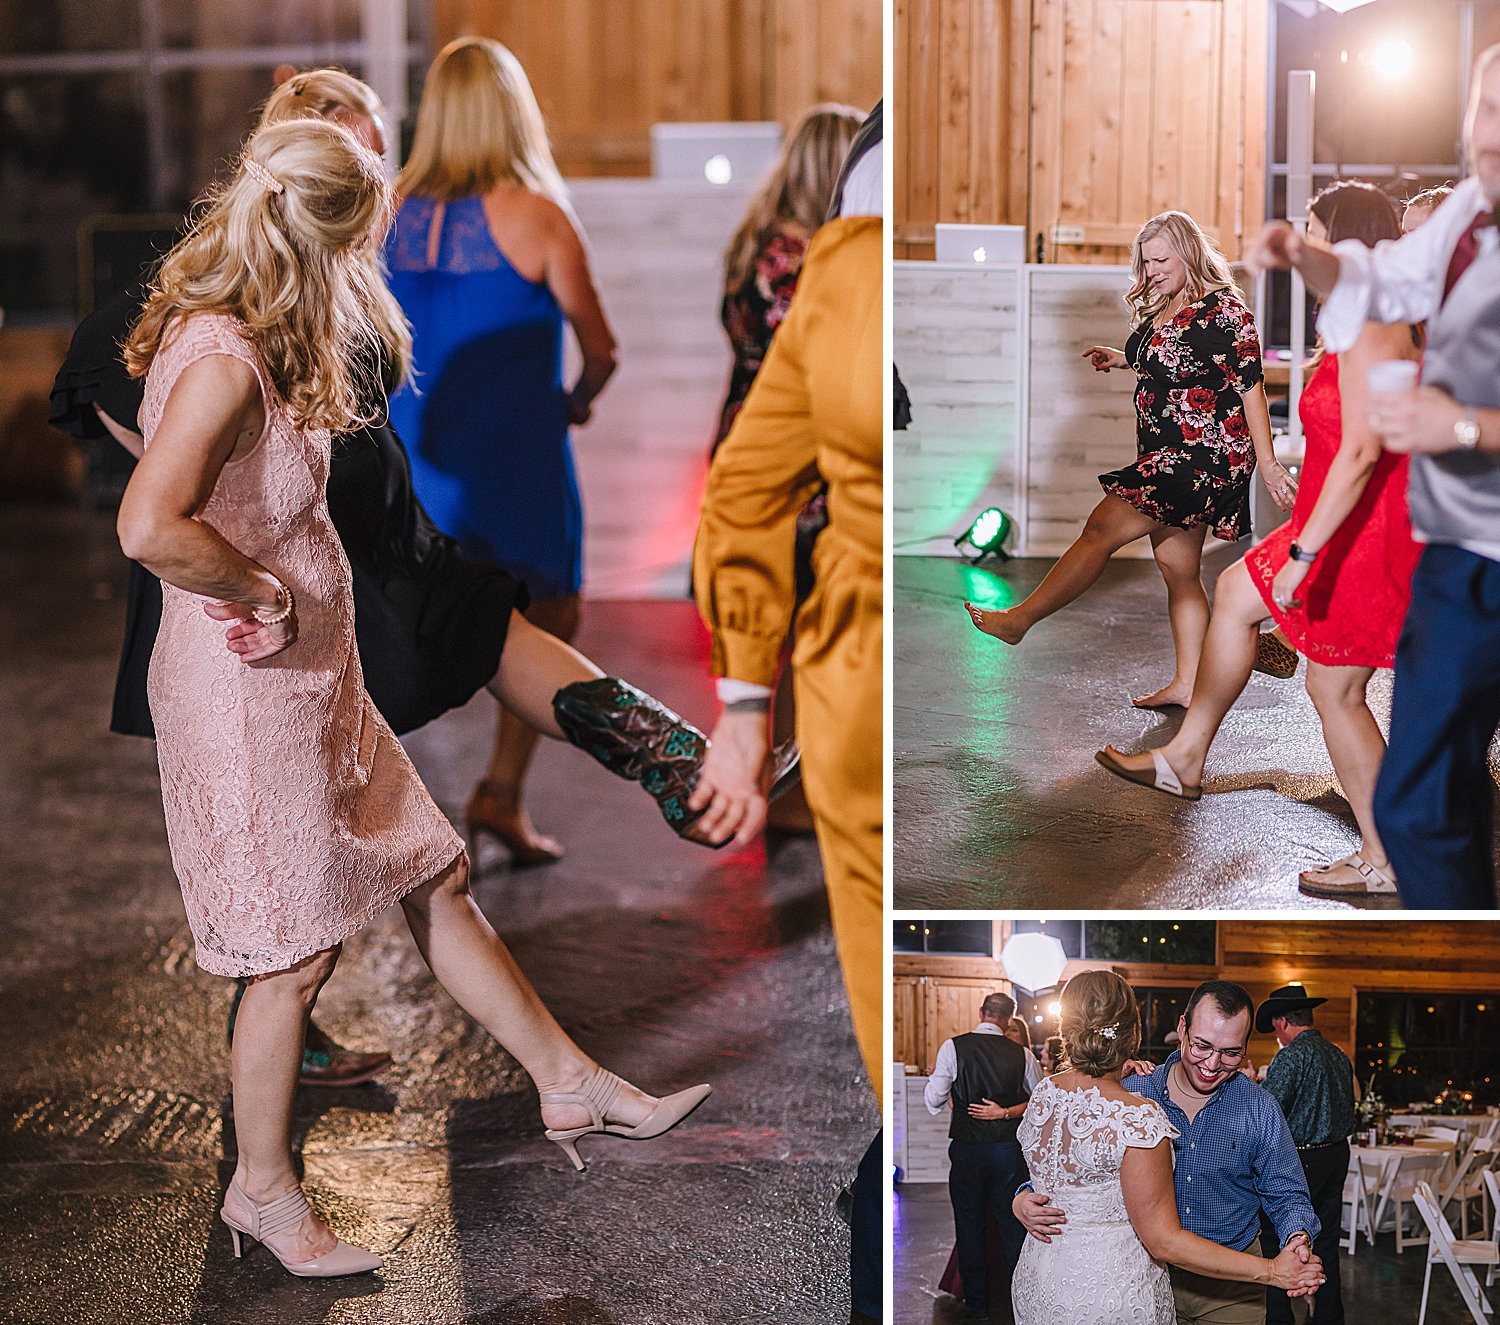 Geronimo-Oaks-Wedding-Venue-Seguin-Texas-Elegant-Navy-Burgundy-Wedding-Carly-Barton-Photography_0084.jpg